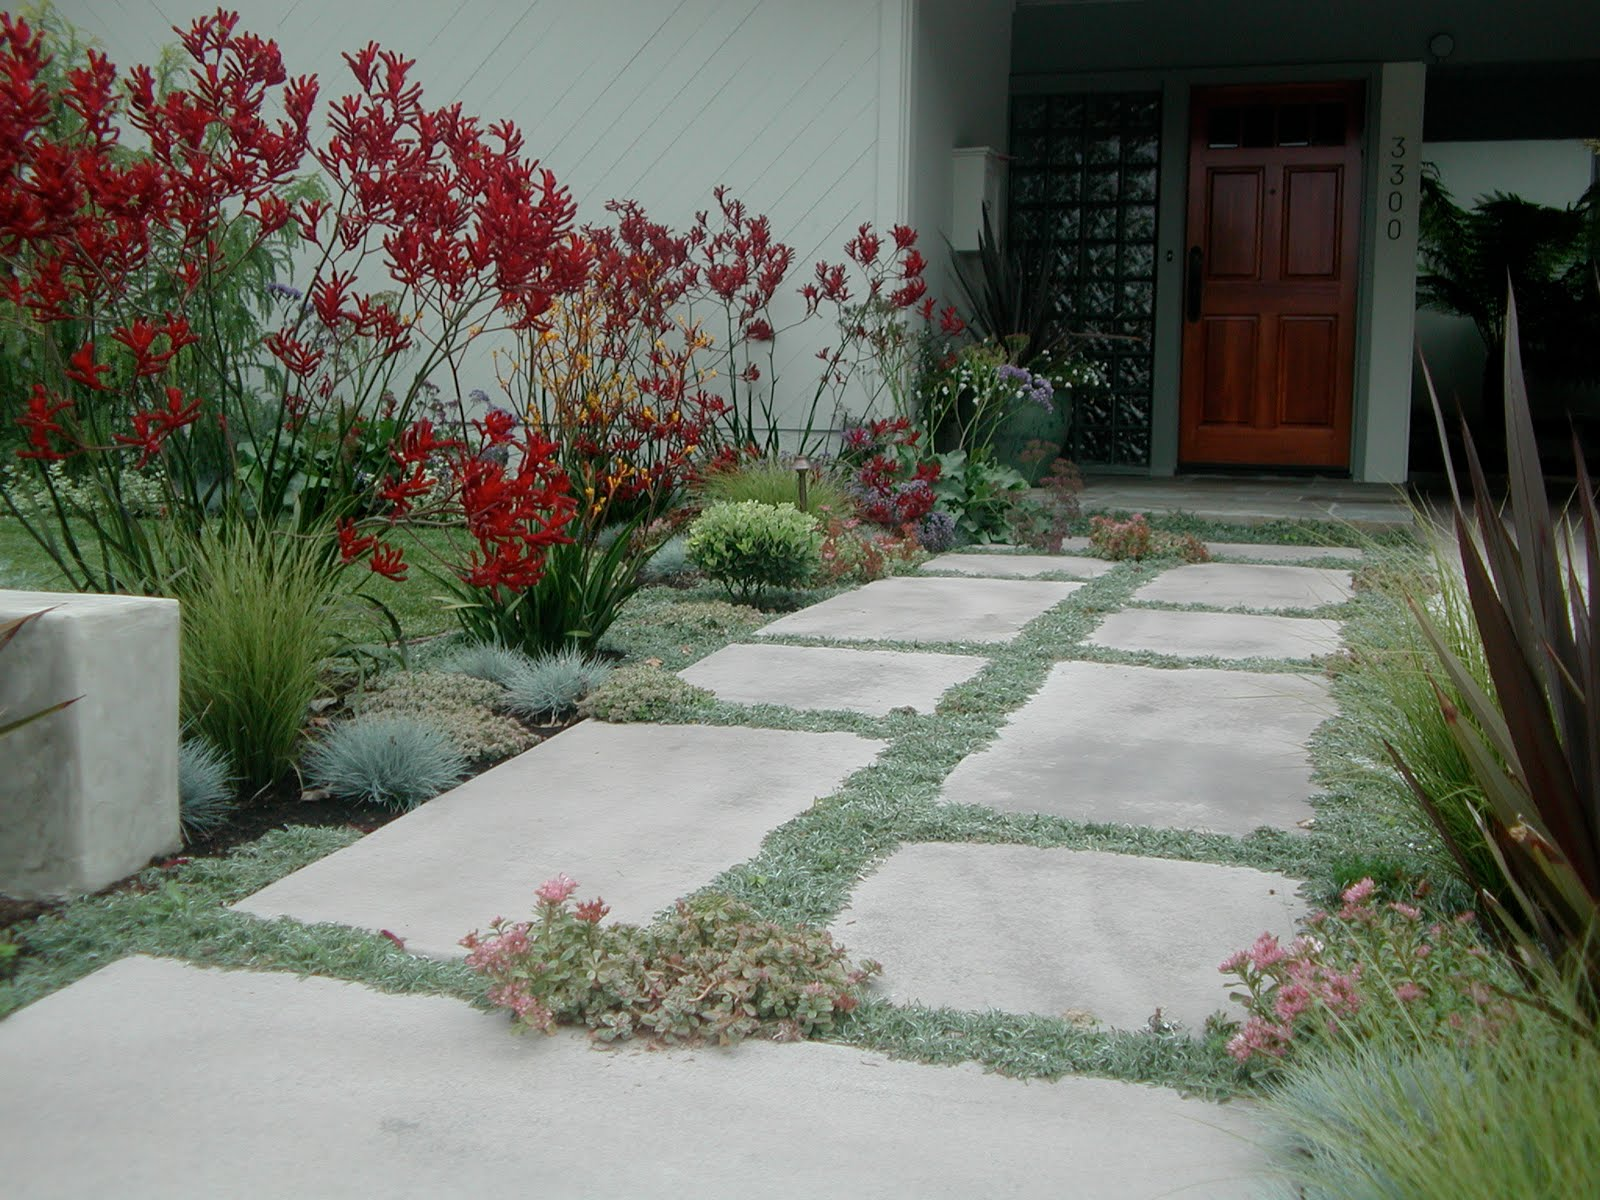 How to plant ground cover between pavers - Concrete Pavers Planted With Dymondia Ground Cover Between Is A Better Alternative To Solid Walkways As It Is More Permeable This Border Is Edged With A